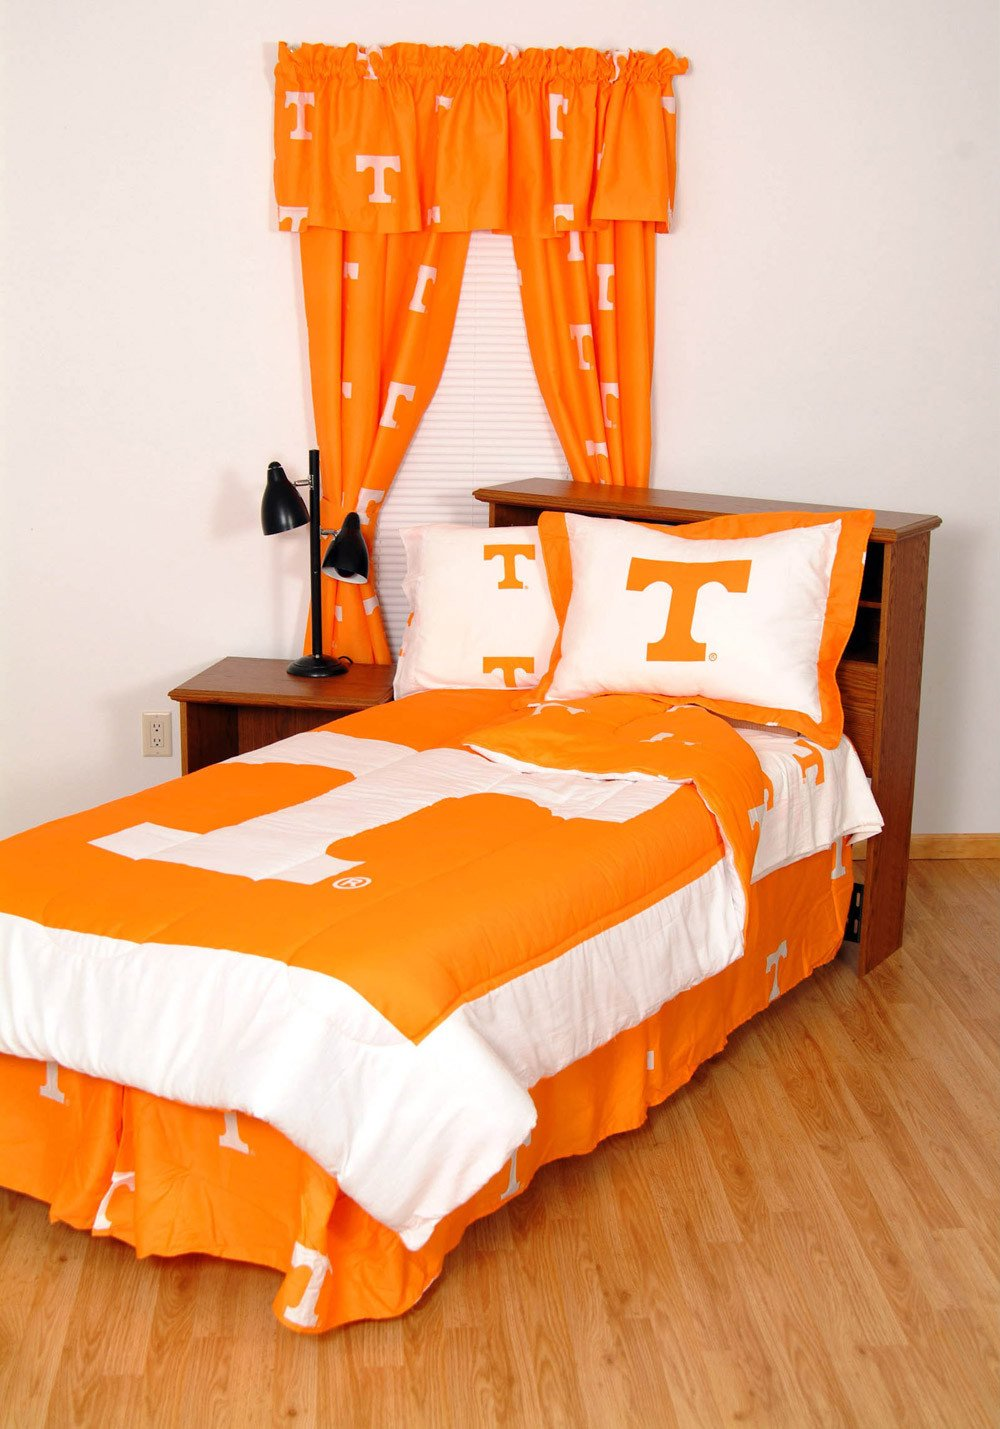 Tennessee Bed in a Bag King - With White Sheets - TENBBKGW by College Covers from College Covers